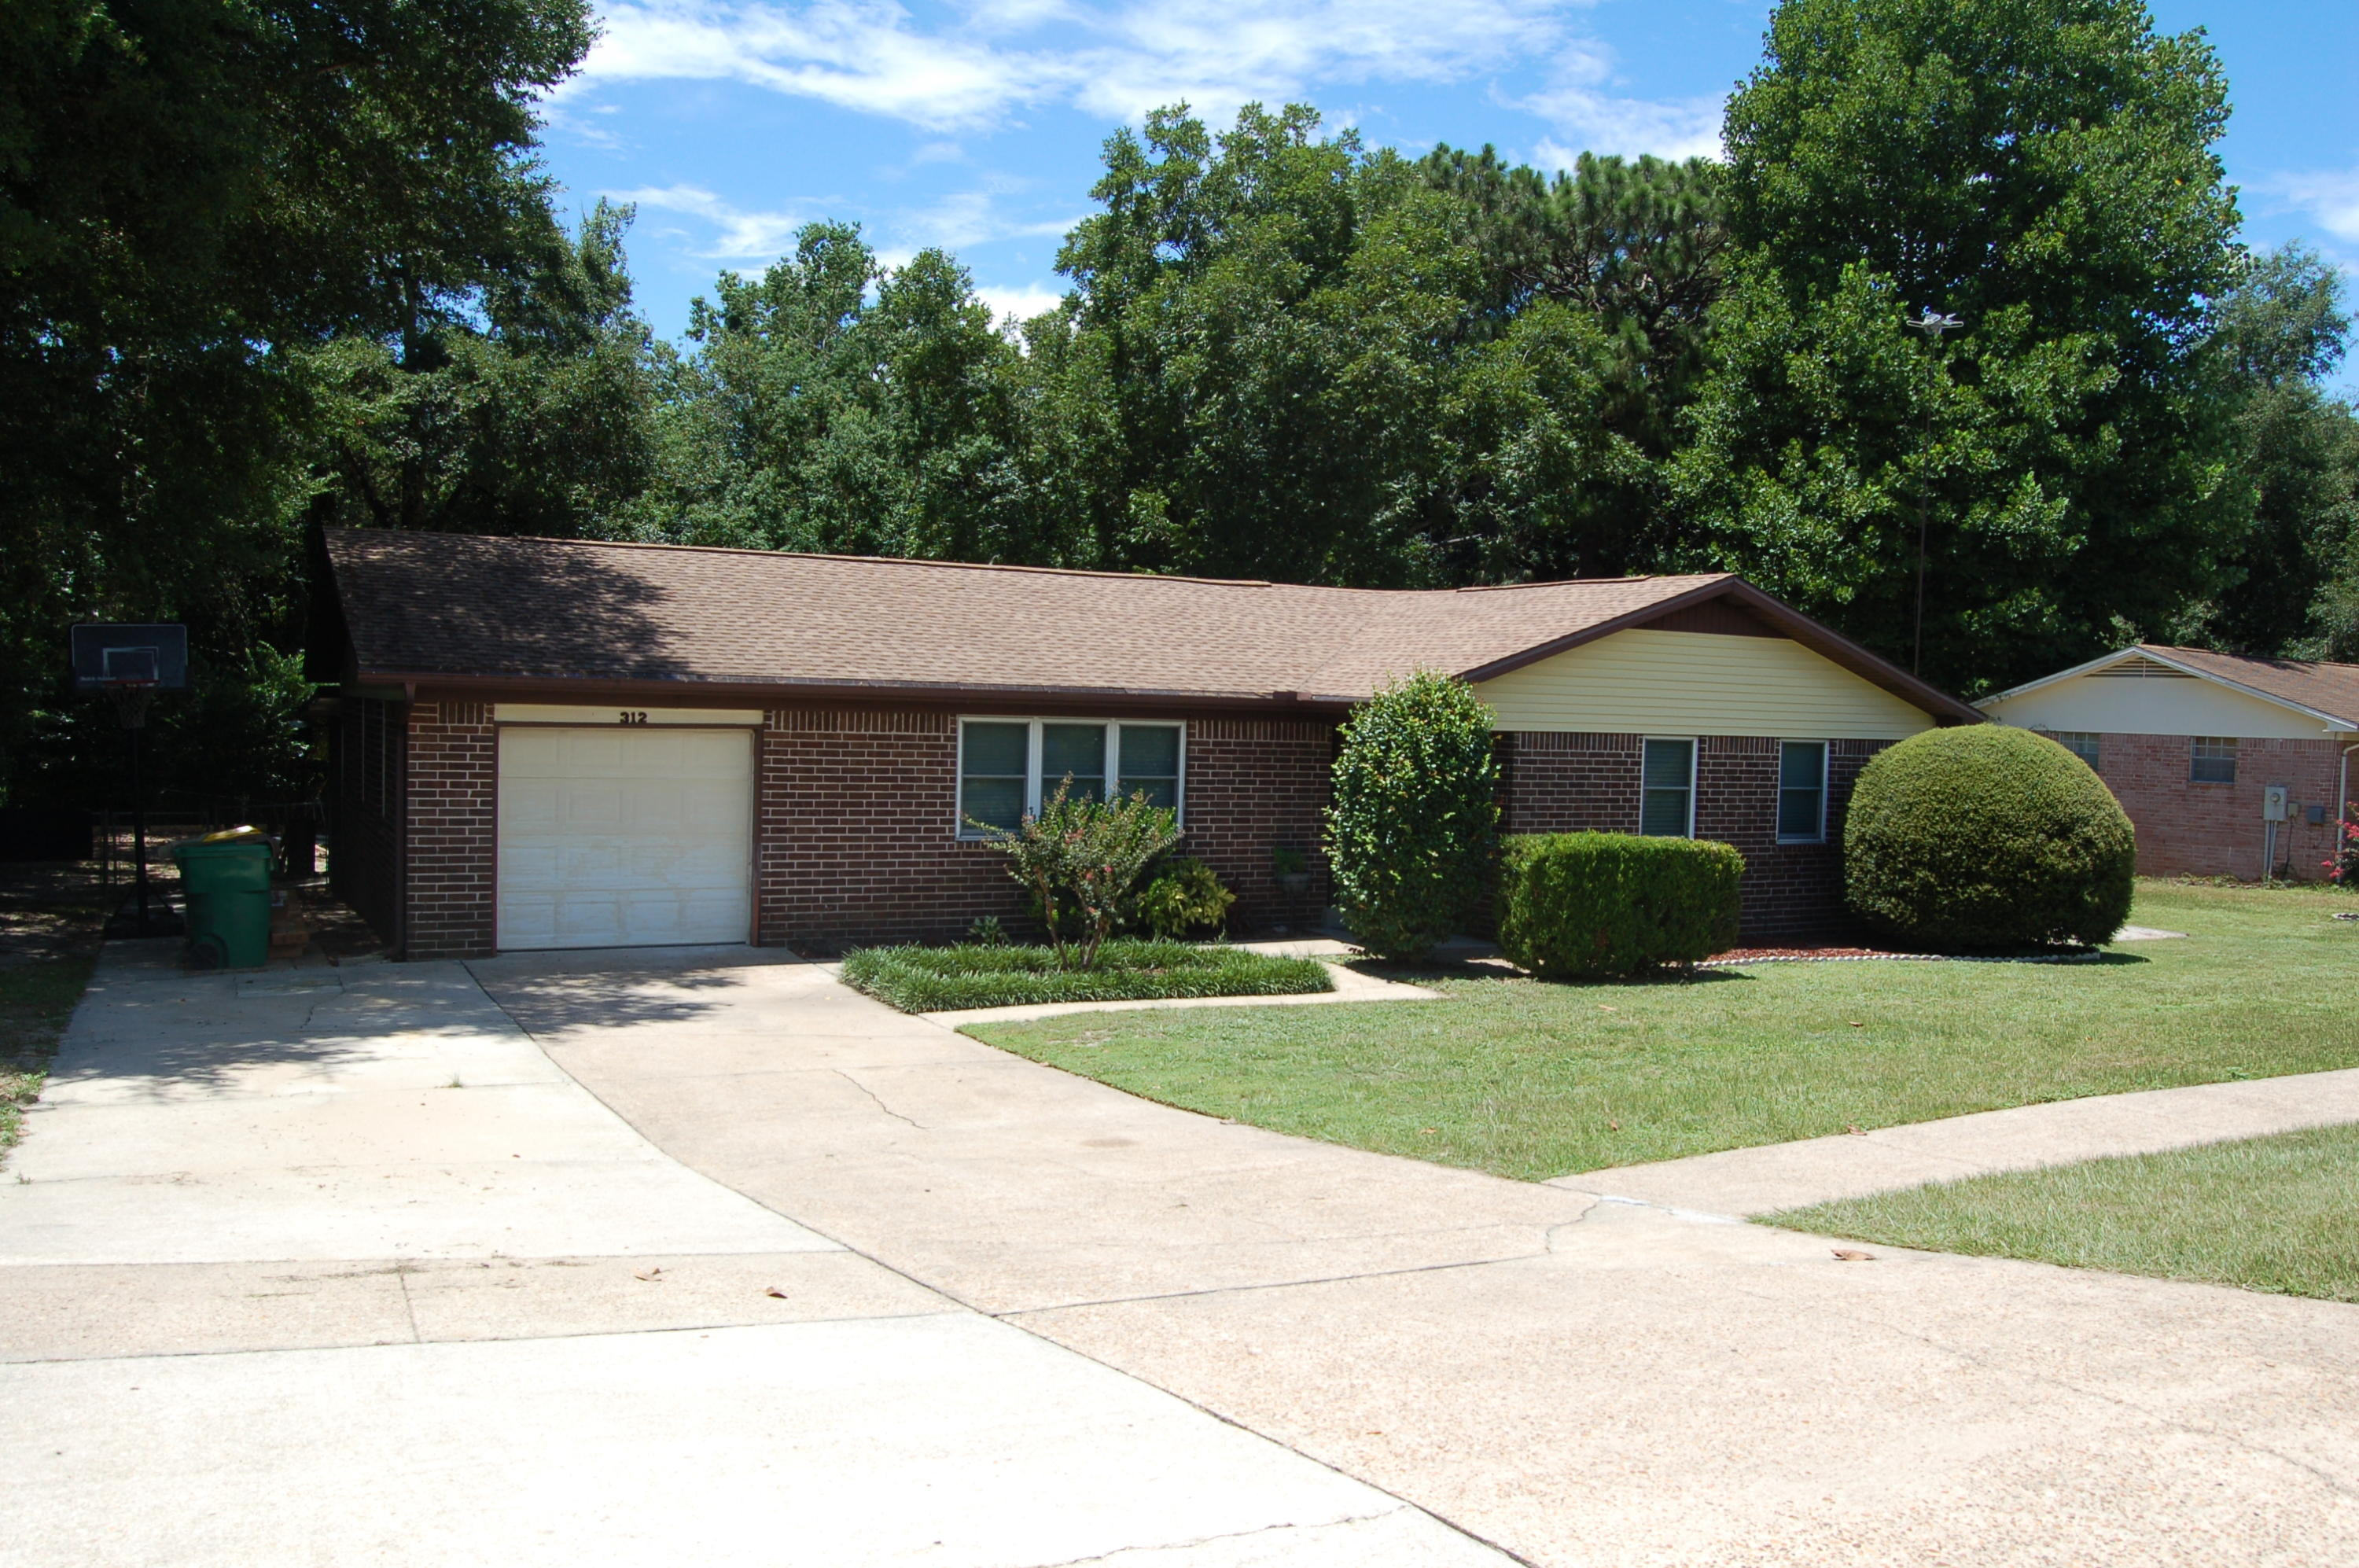 Photo of home for sale at 312 Mcewen, Niceville FL